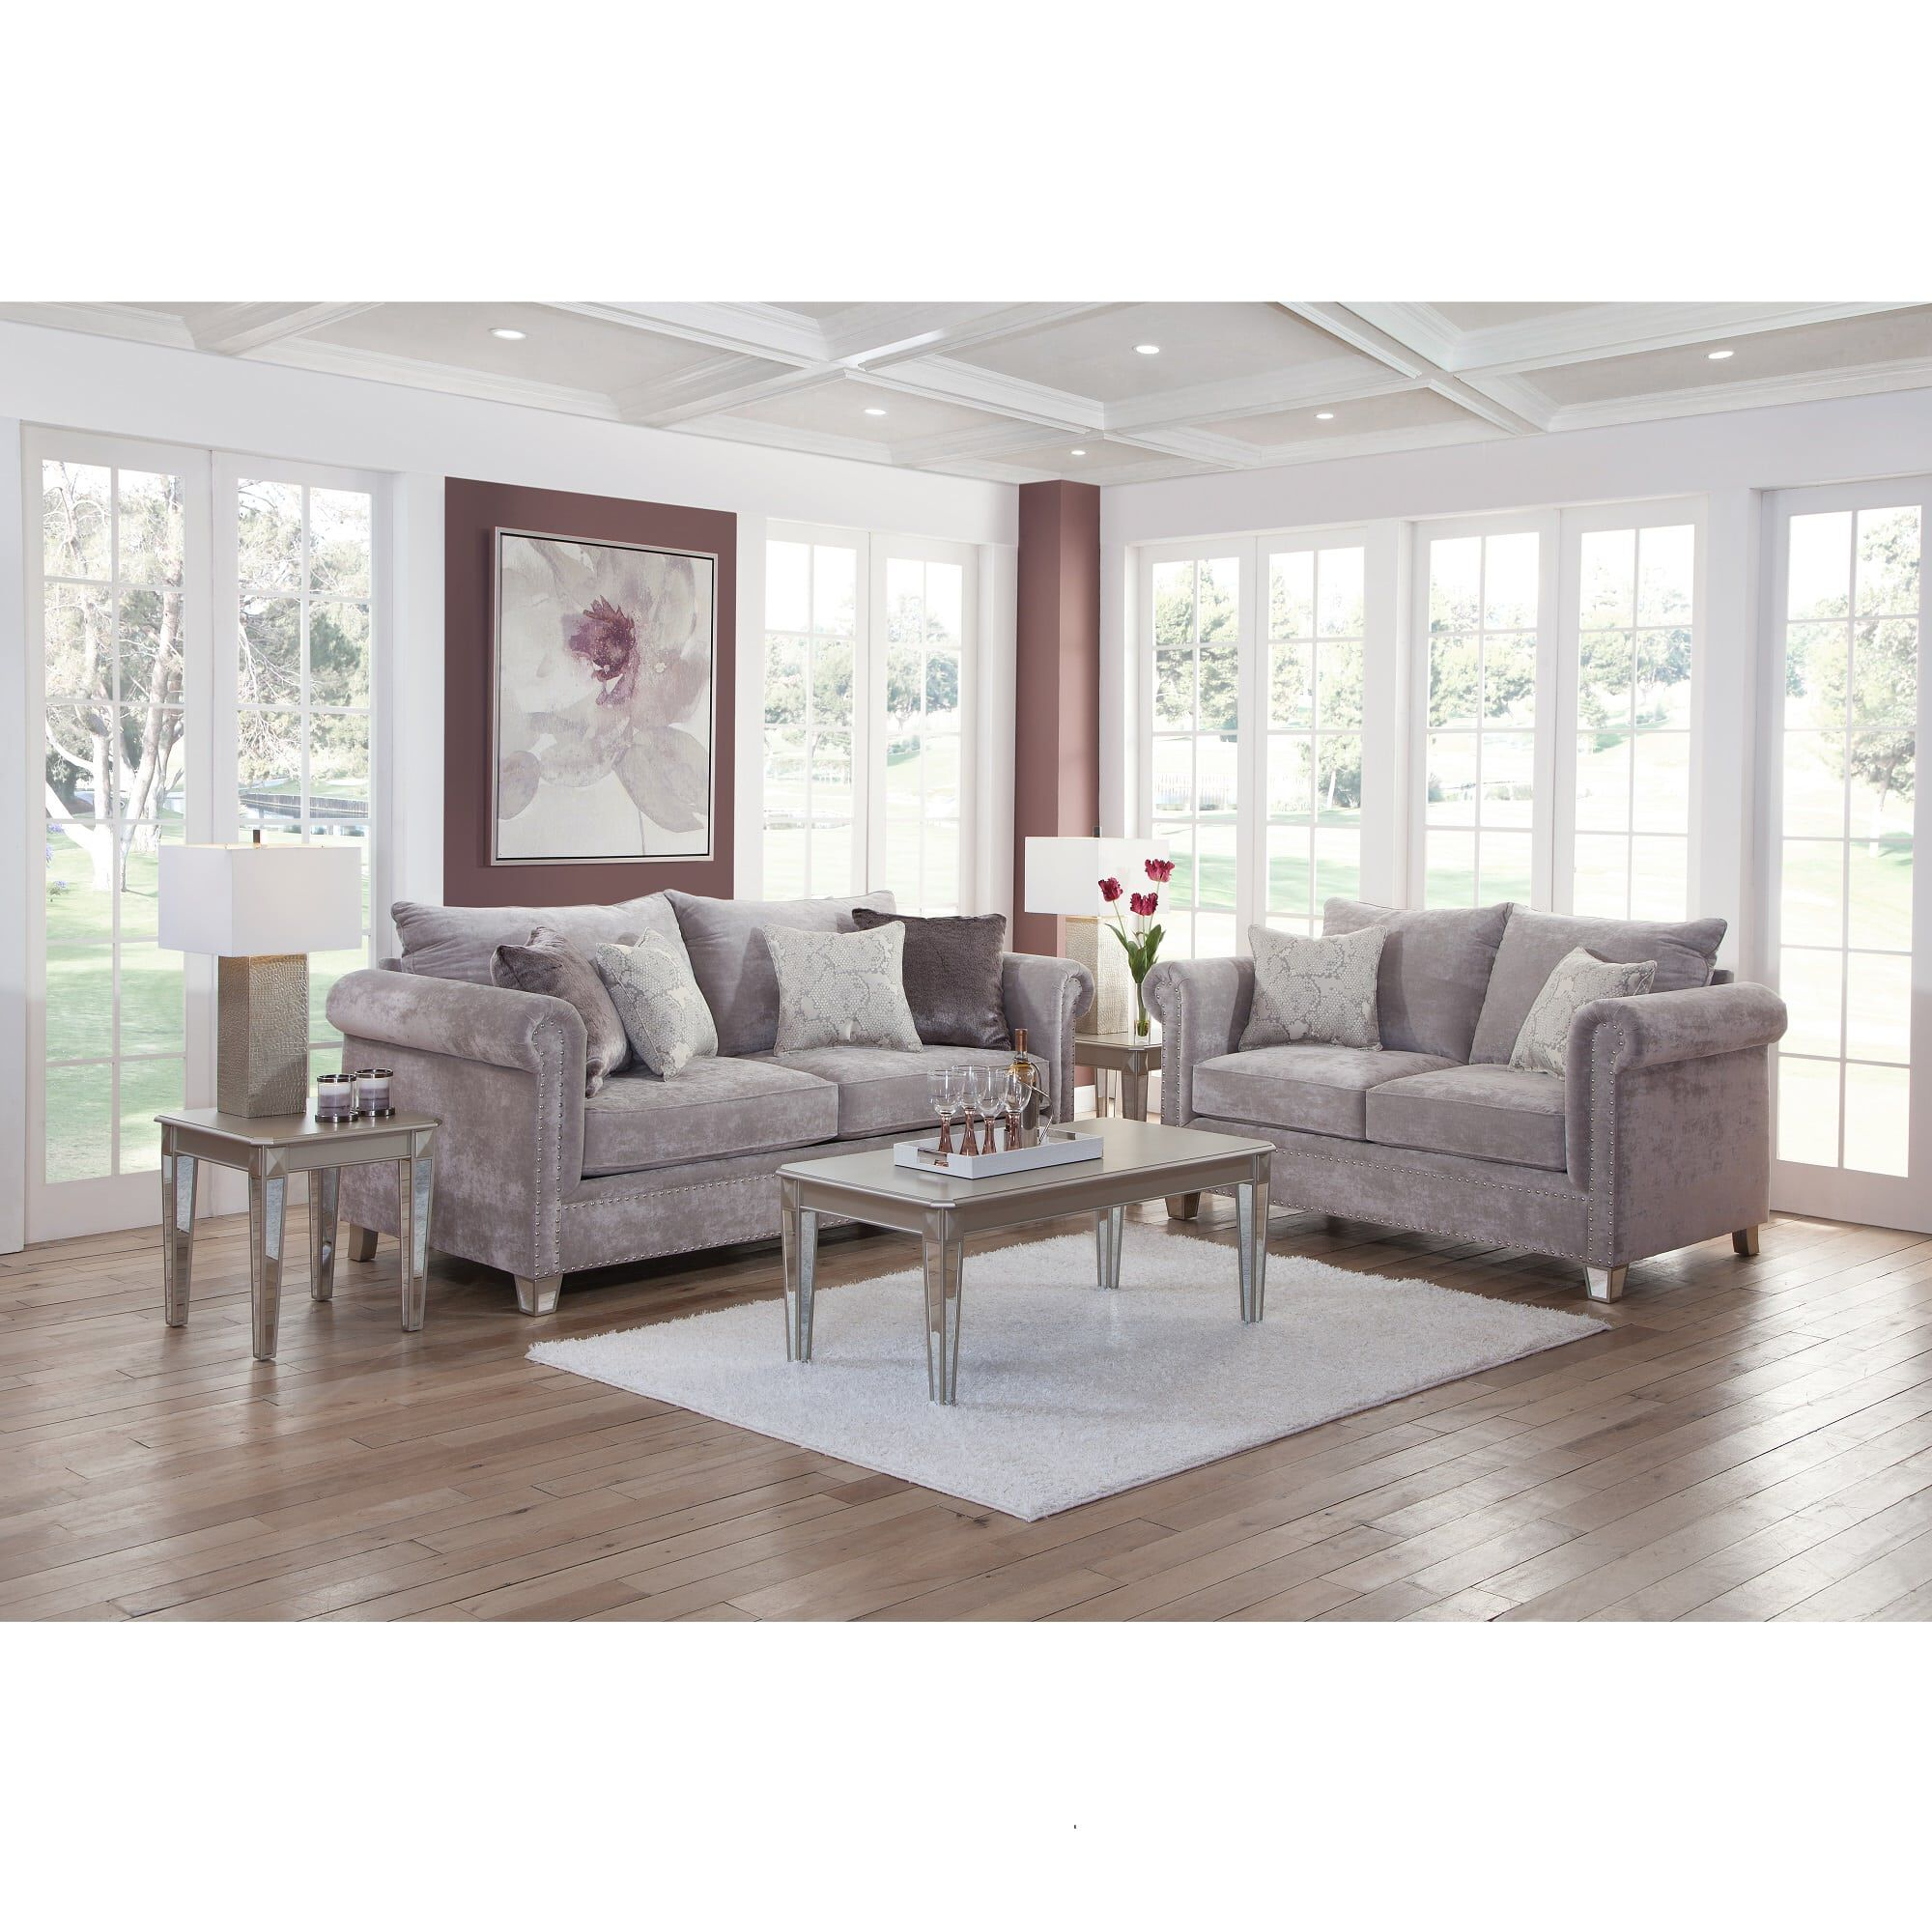 Delightful 7 Piece Hollywood Living Room Collection